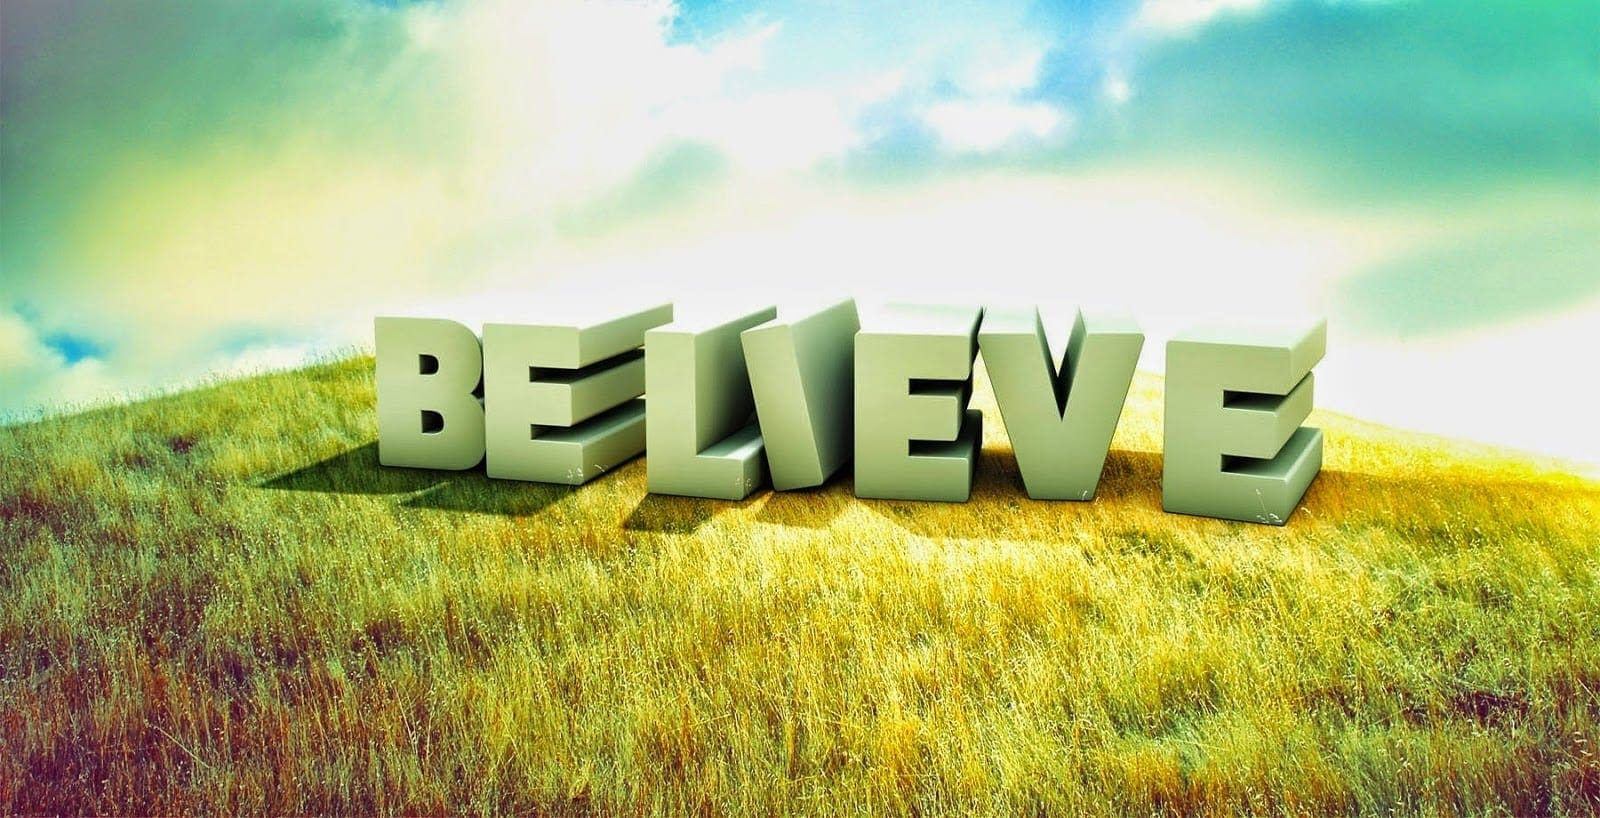 Believe in your IQ Option trading strategy